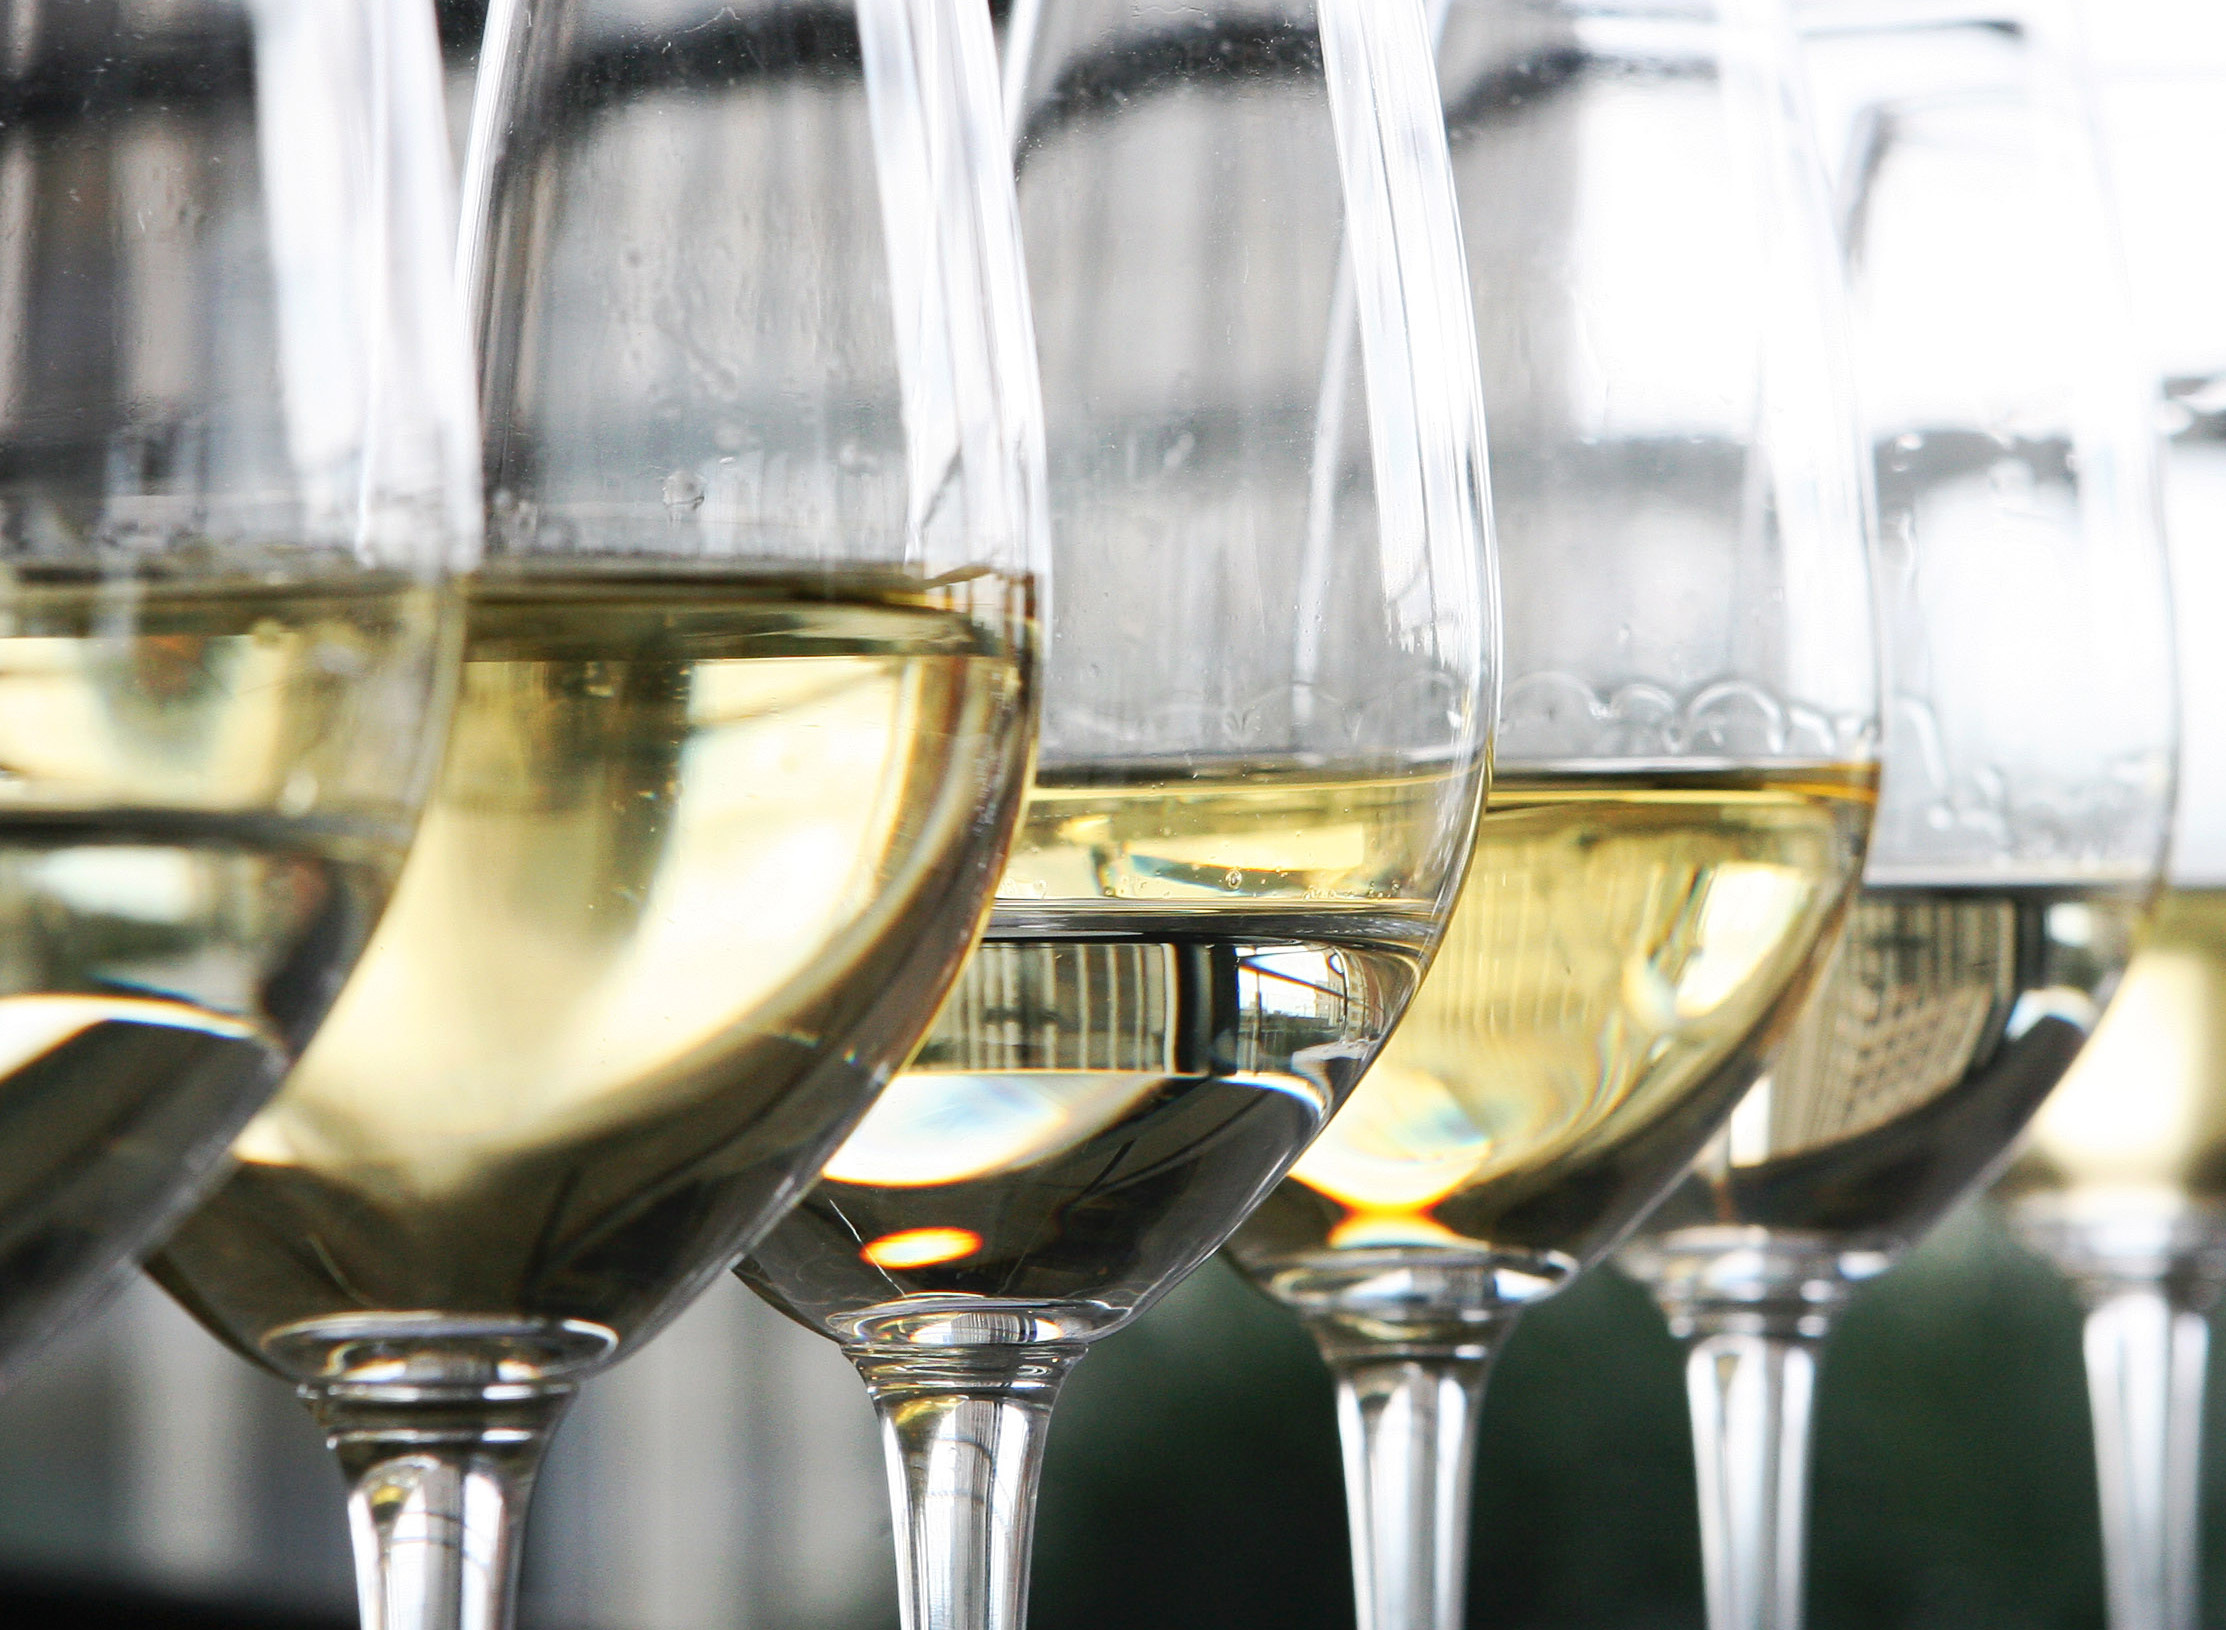 Glasses of white wine sit on display at a restaurant in Lond